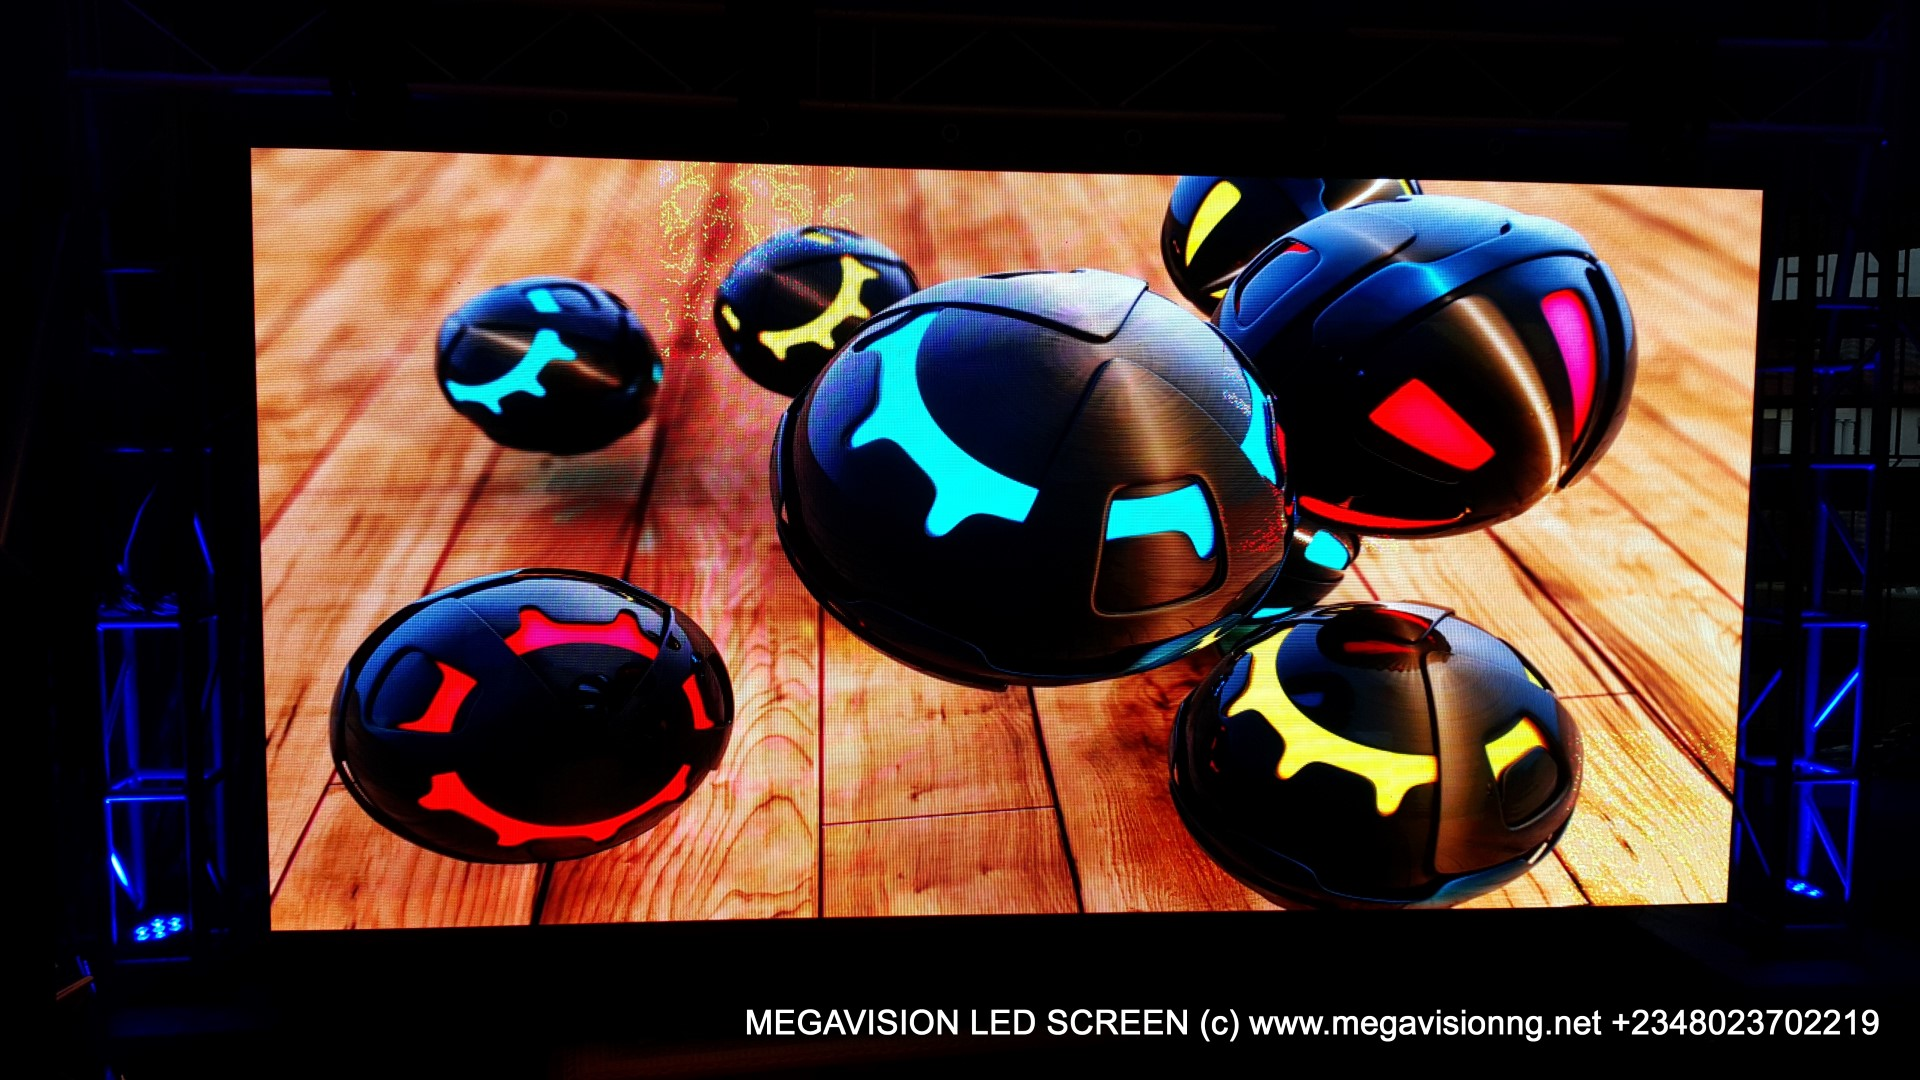 MEGAVISION LED SCREEN (35)